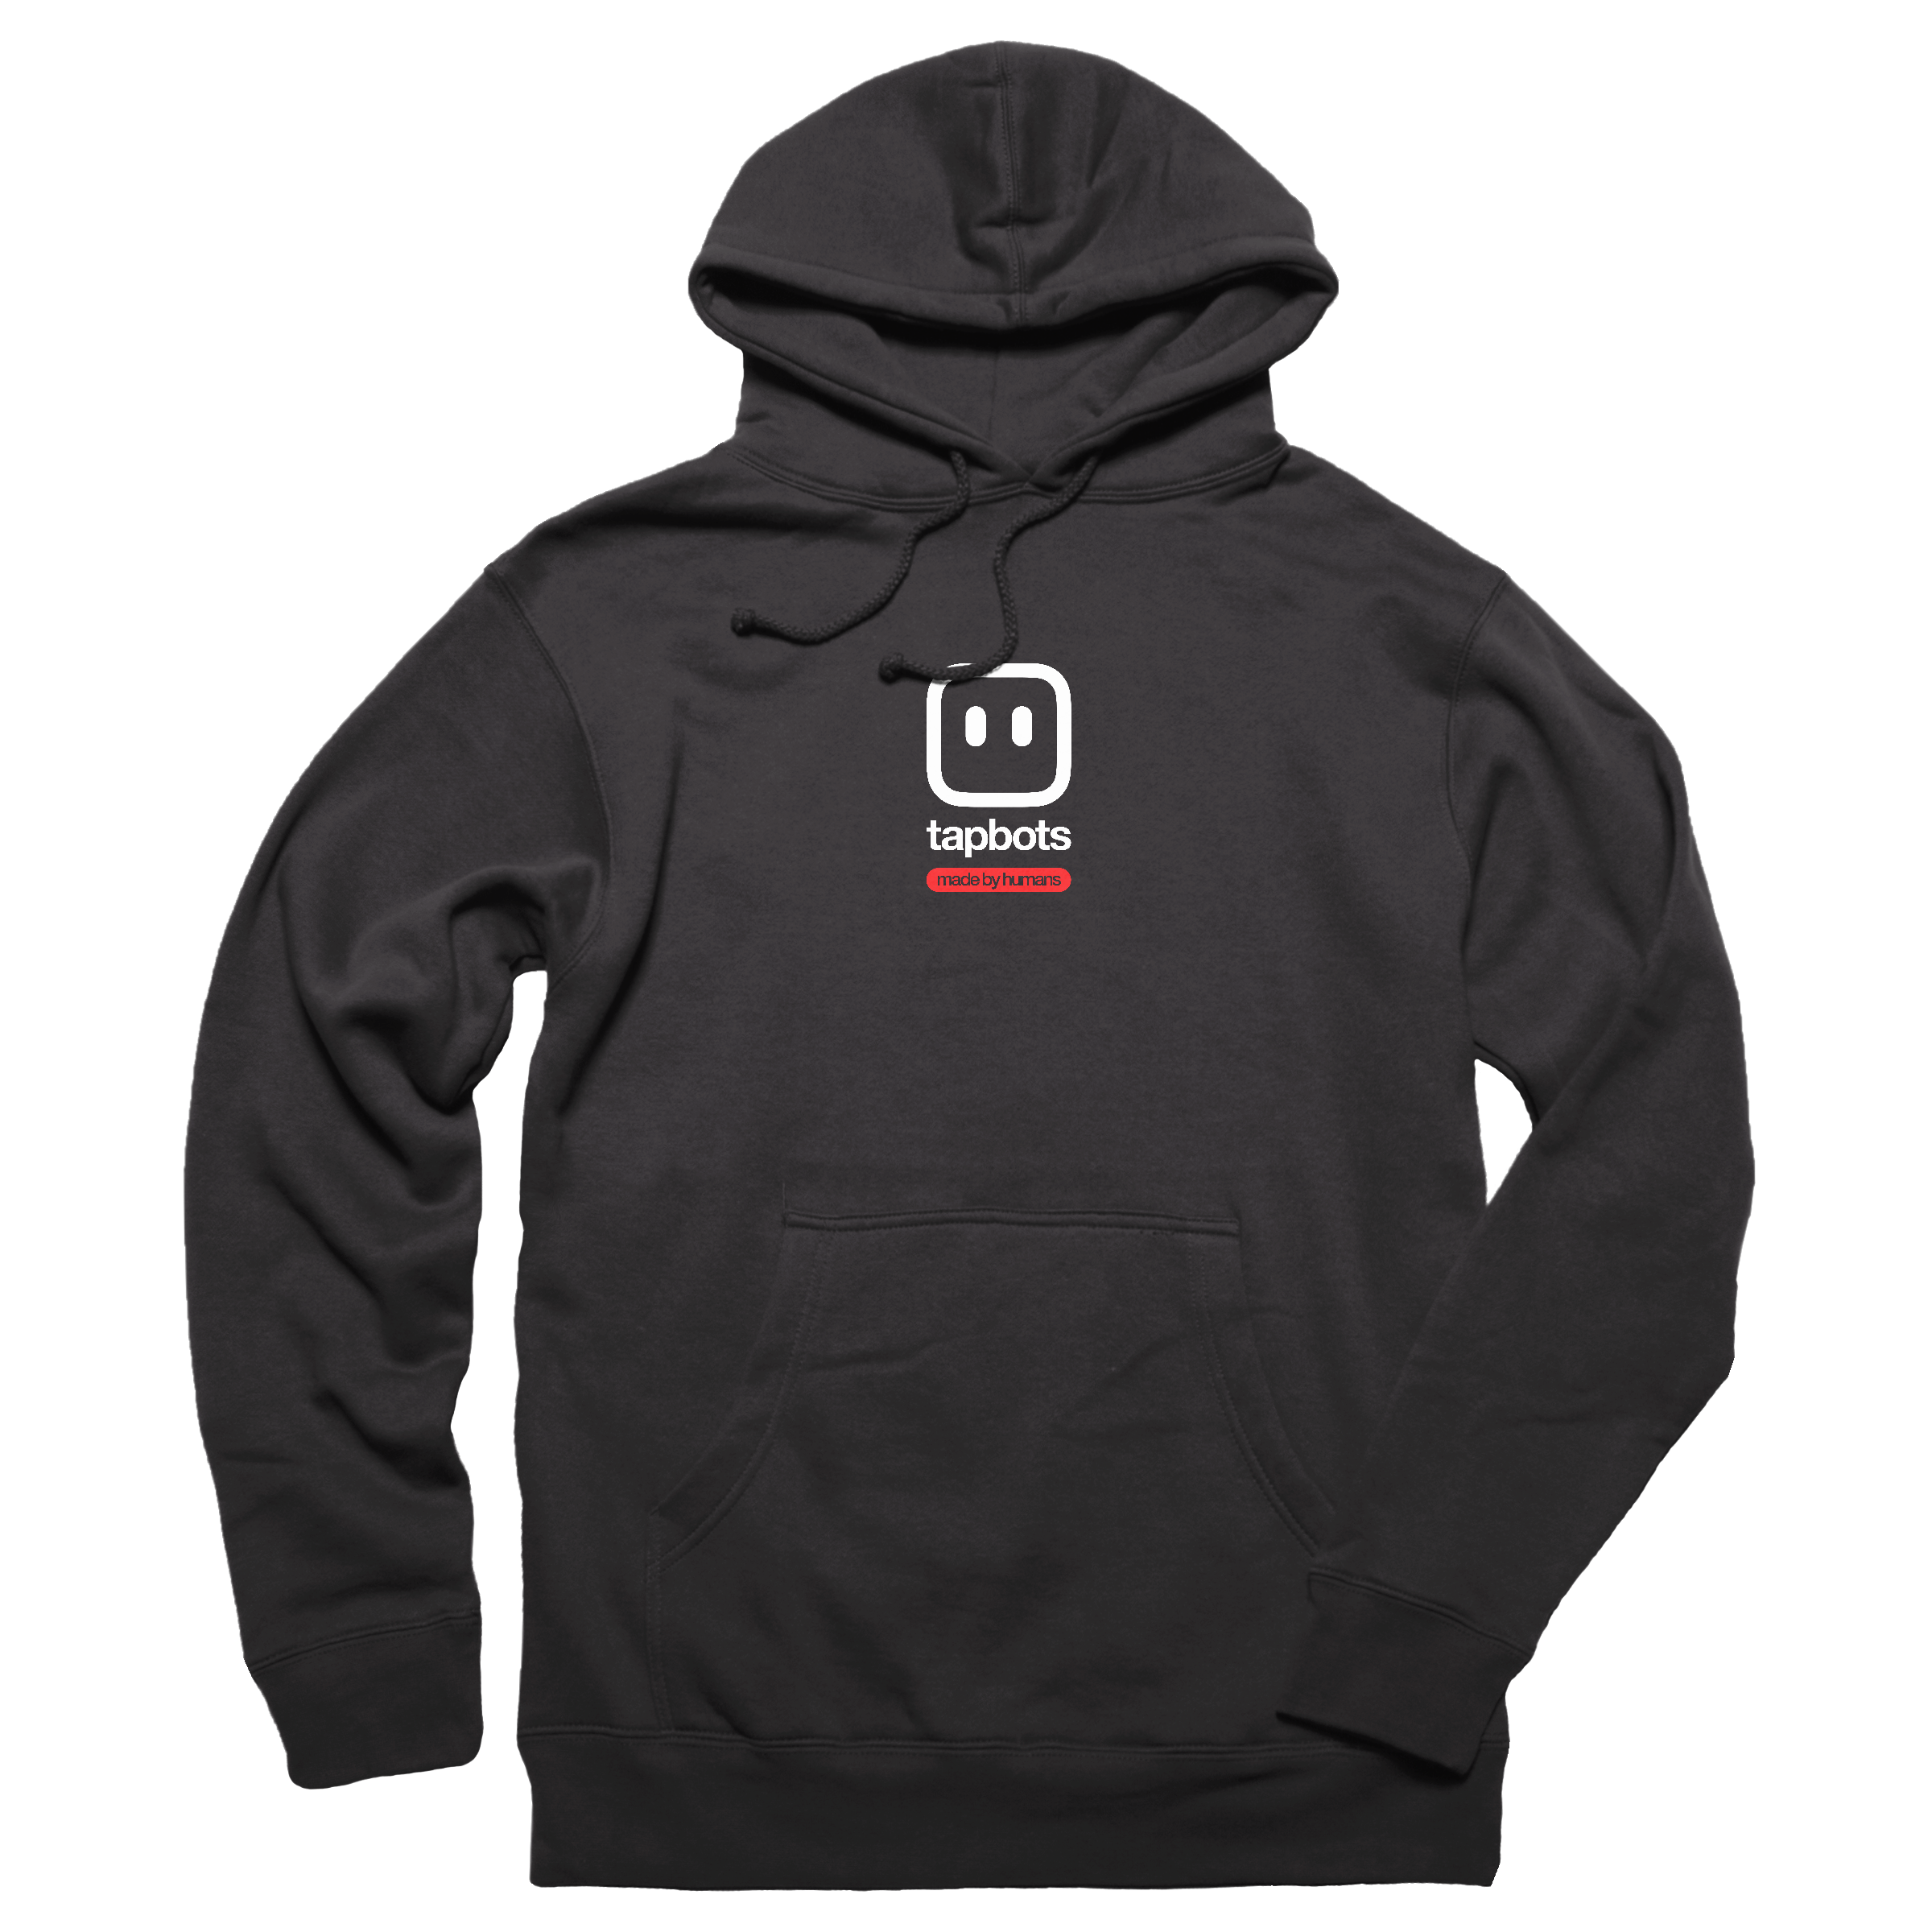 Tapbots: Made by Humans Pullover Hoodie